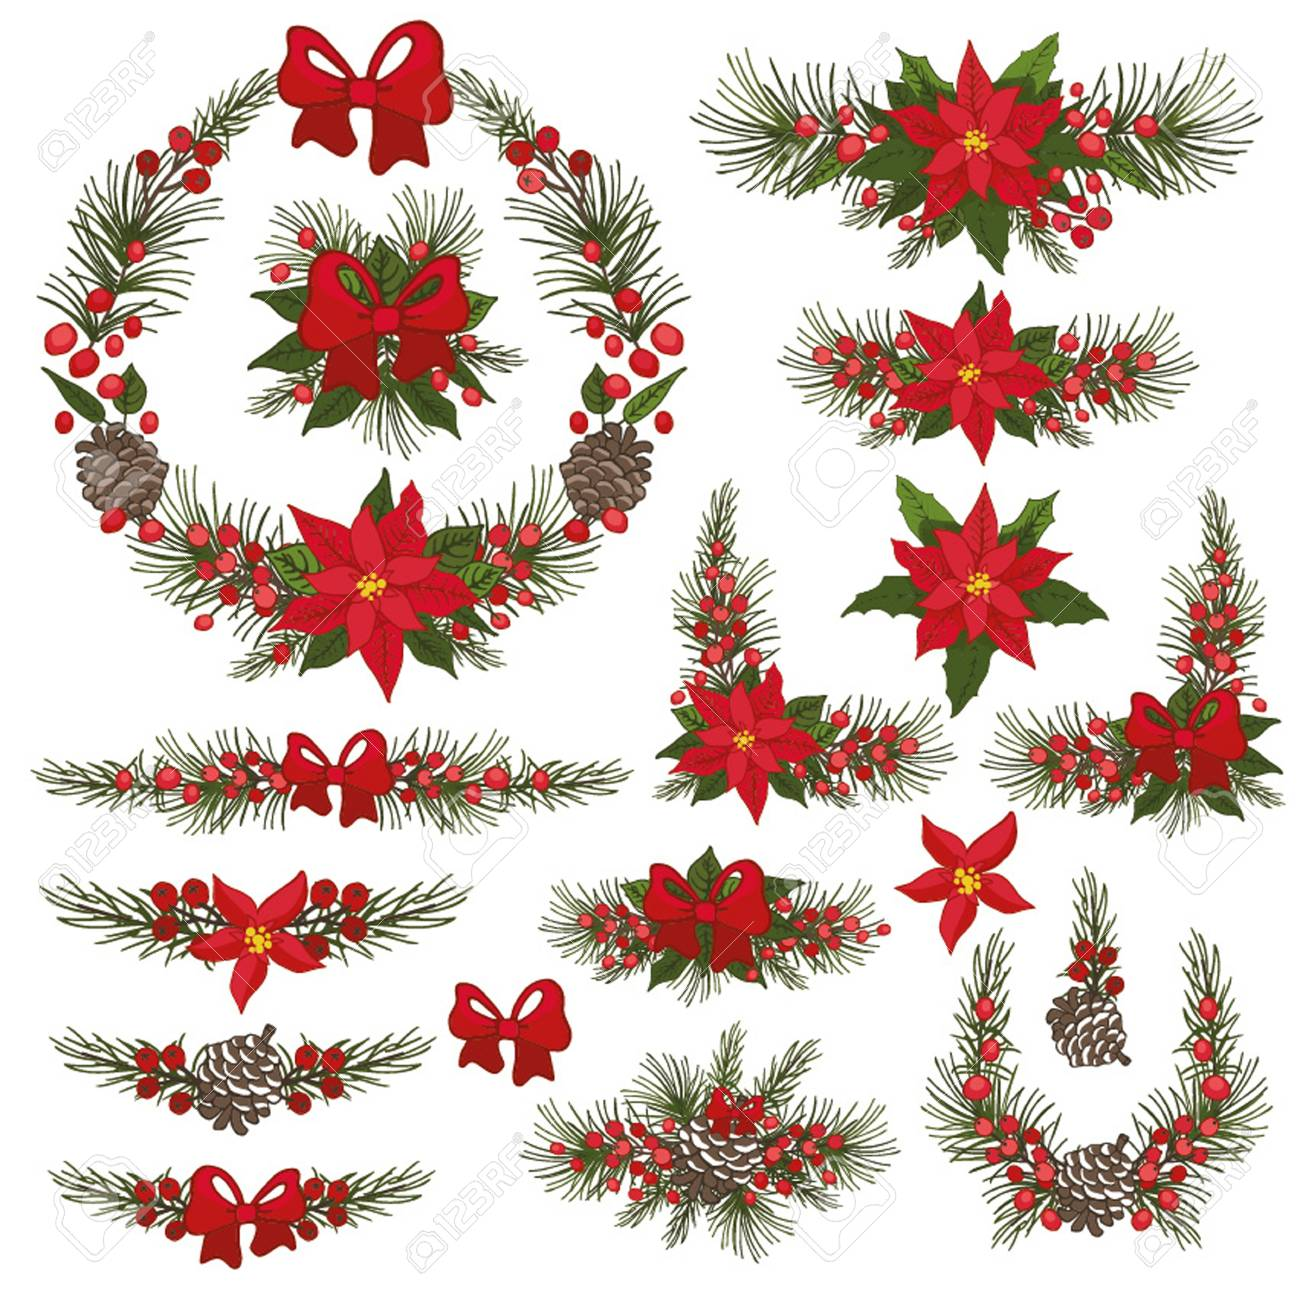 merry christmas and happy new year wreath groupbordermodern flat decor elements